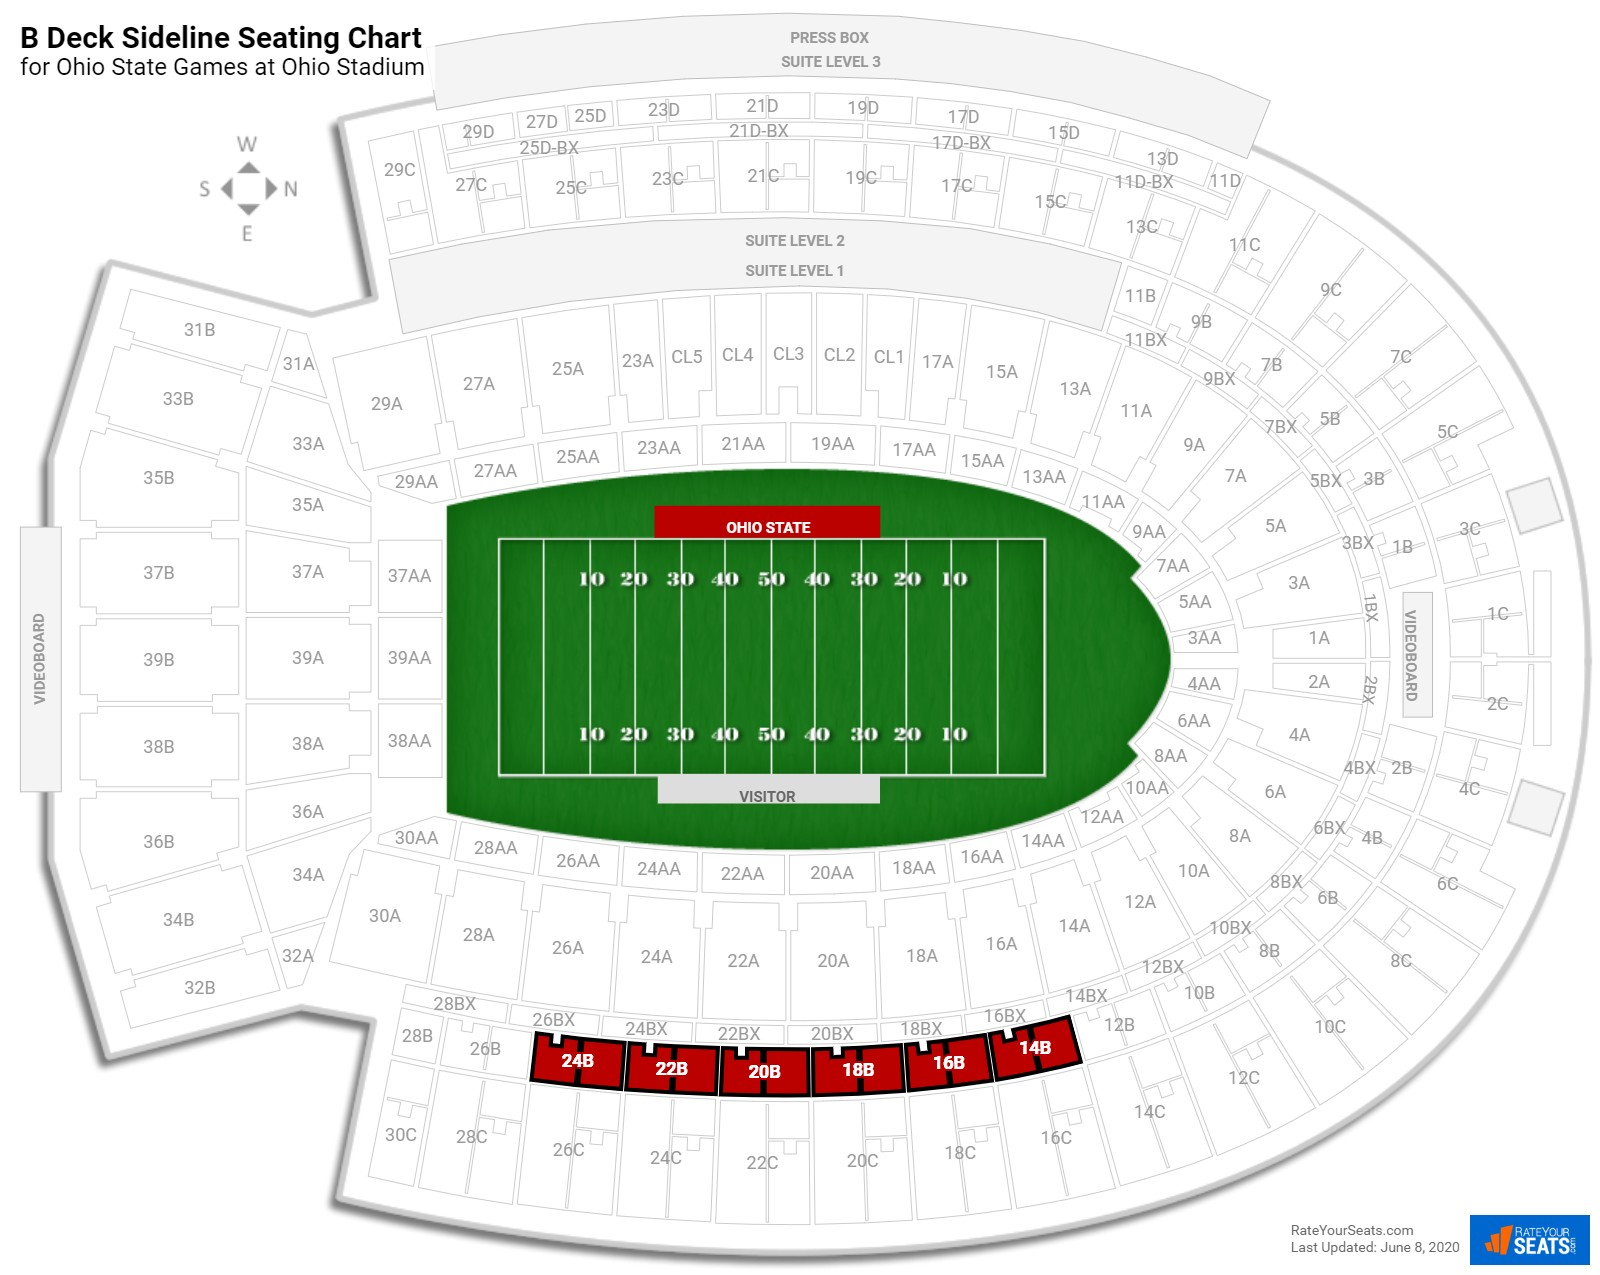 Ohio Stadium B Deck Sideline seating chart